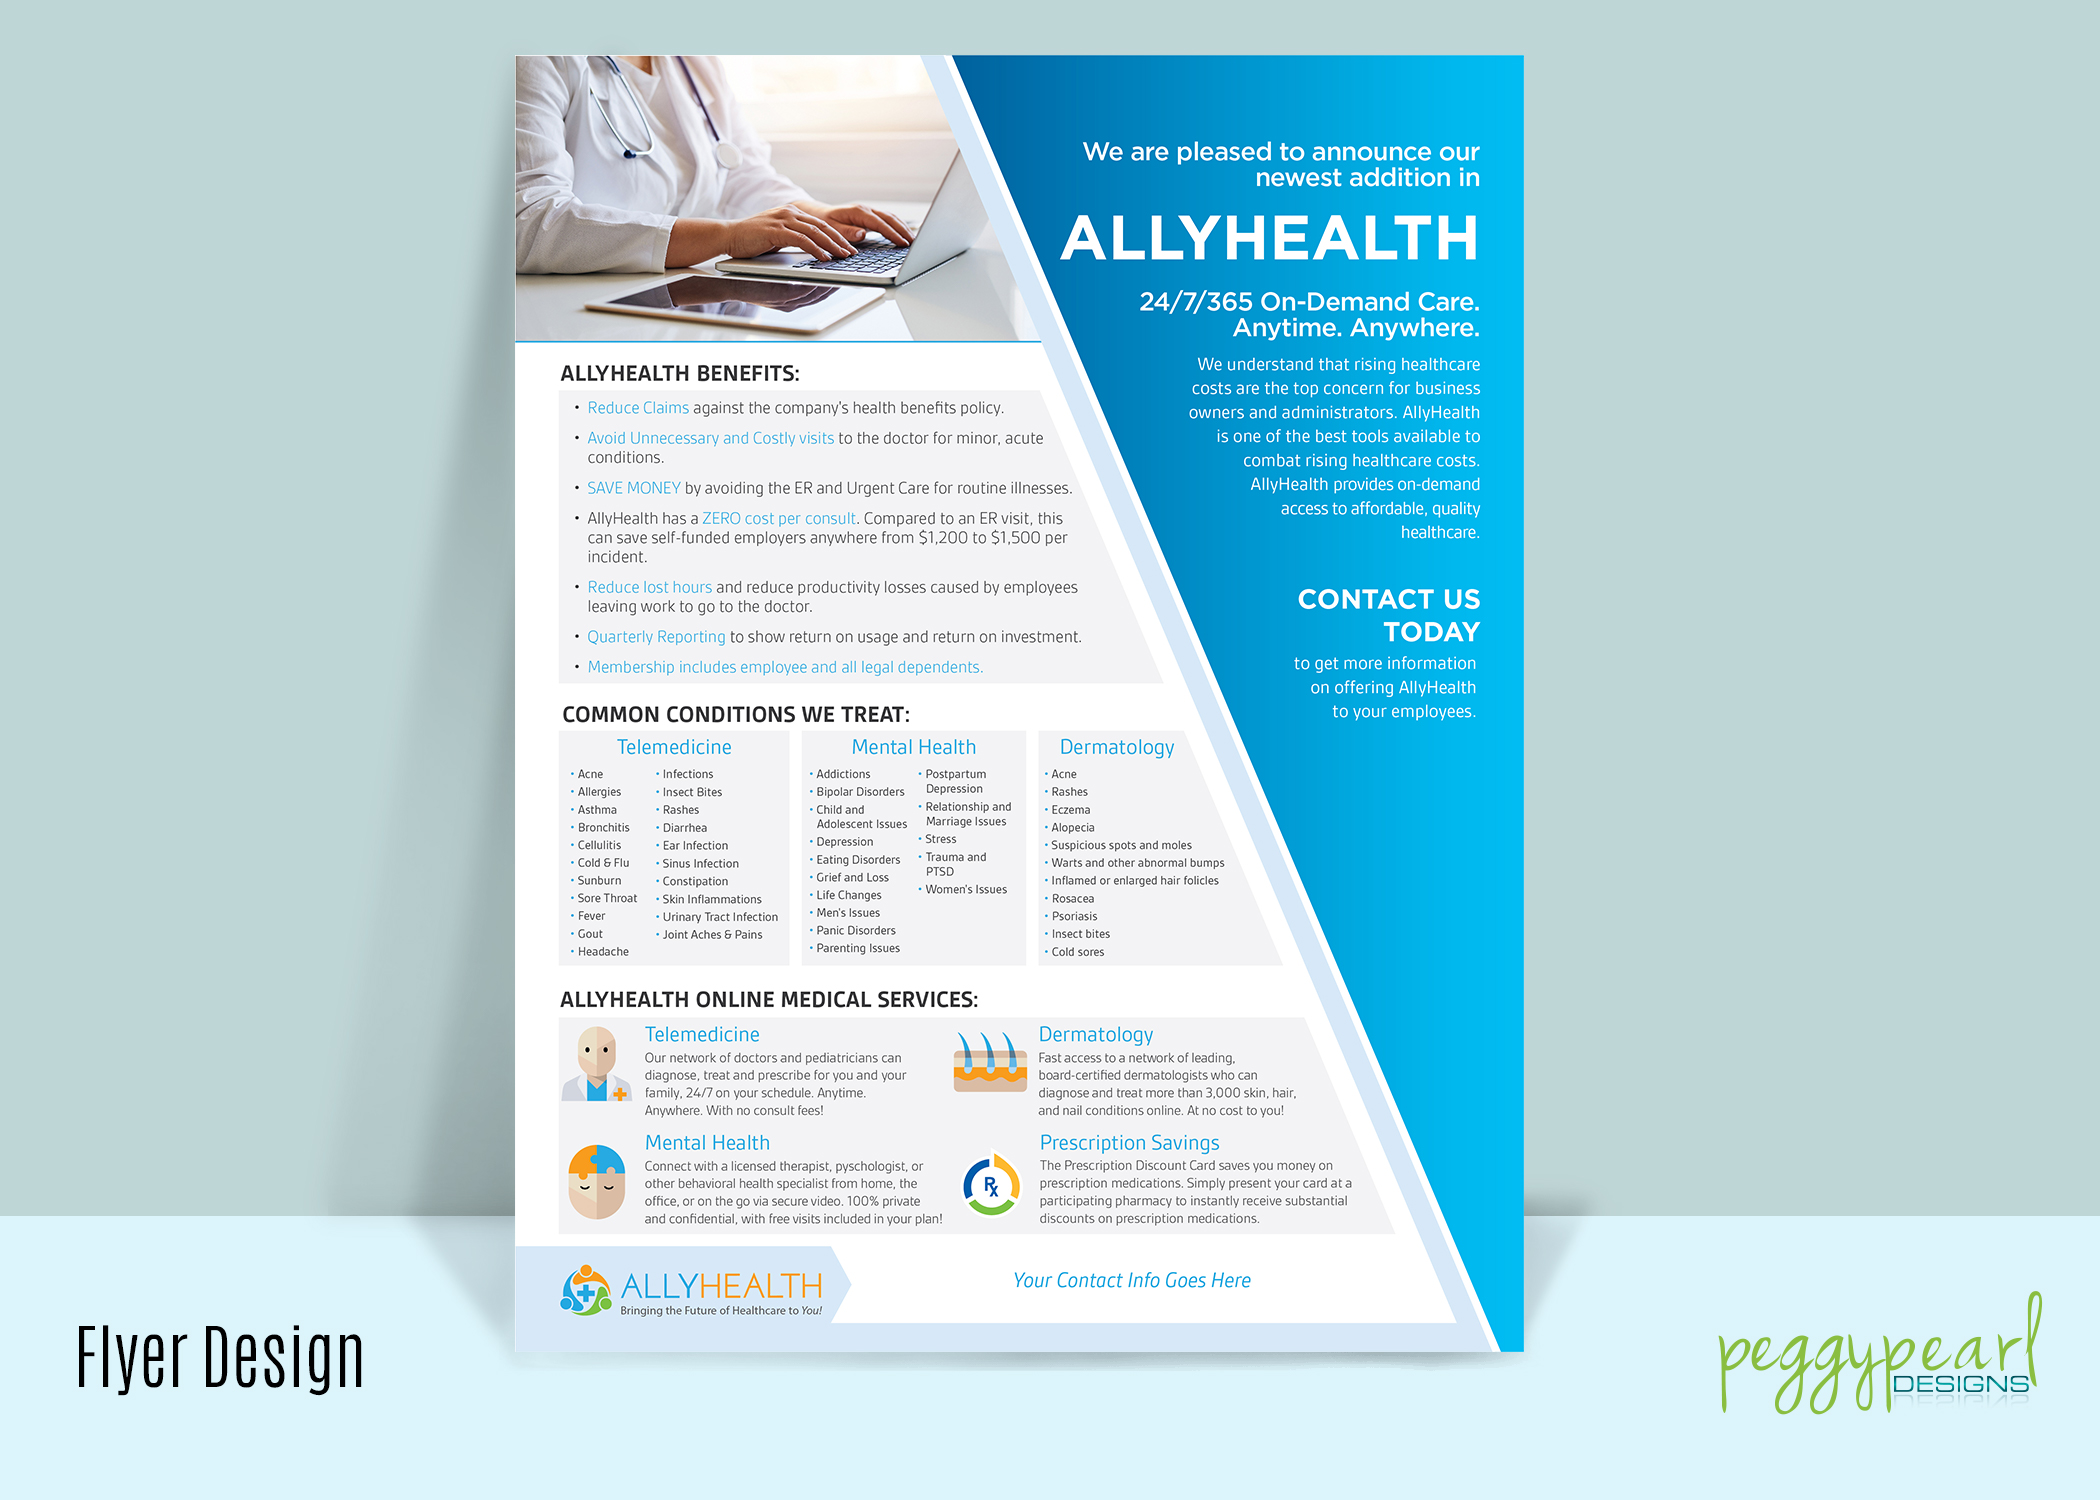 Flyer AllyHealth Benefits